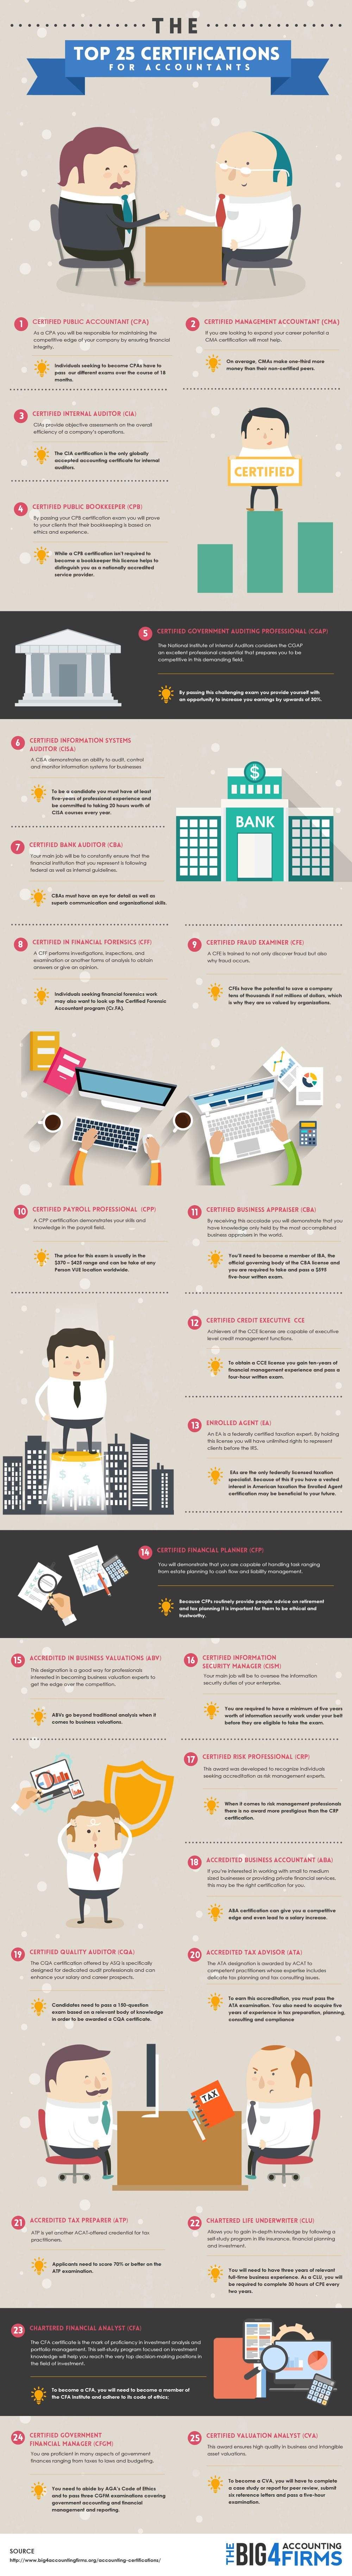 The 25 Best Certifications For Accounting Professionals Infographic